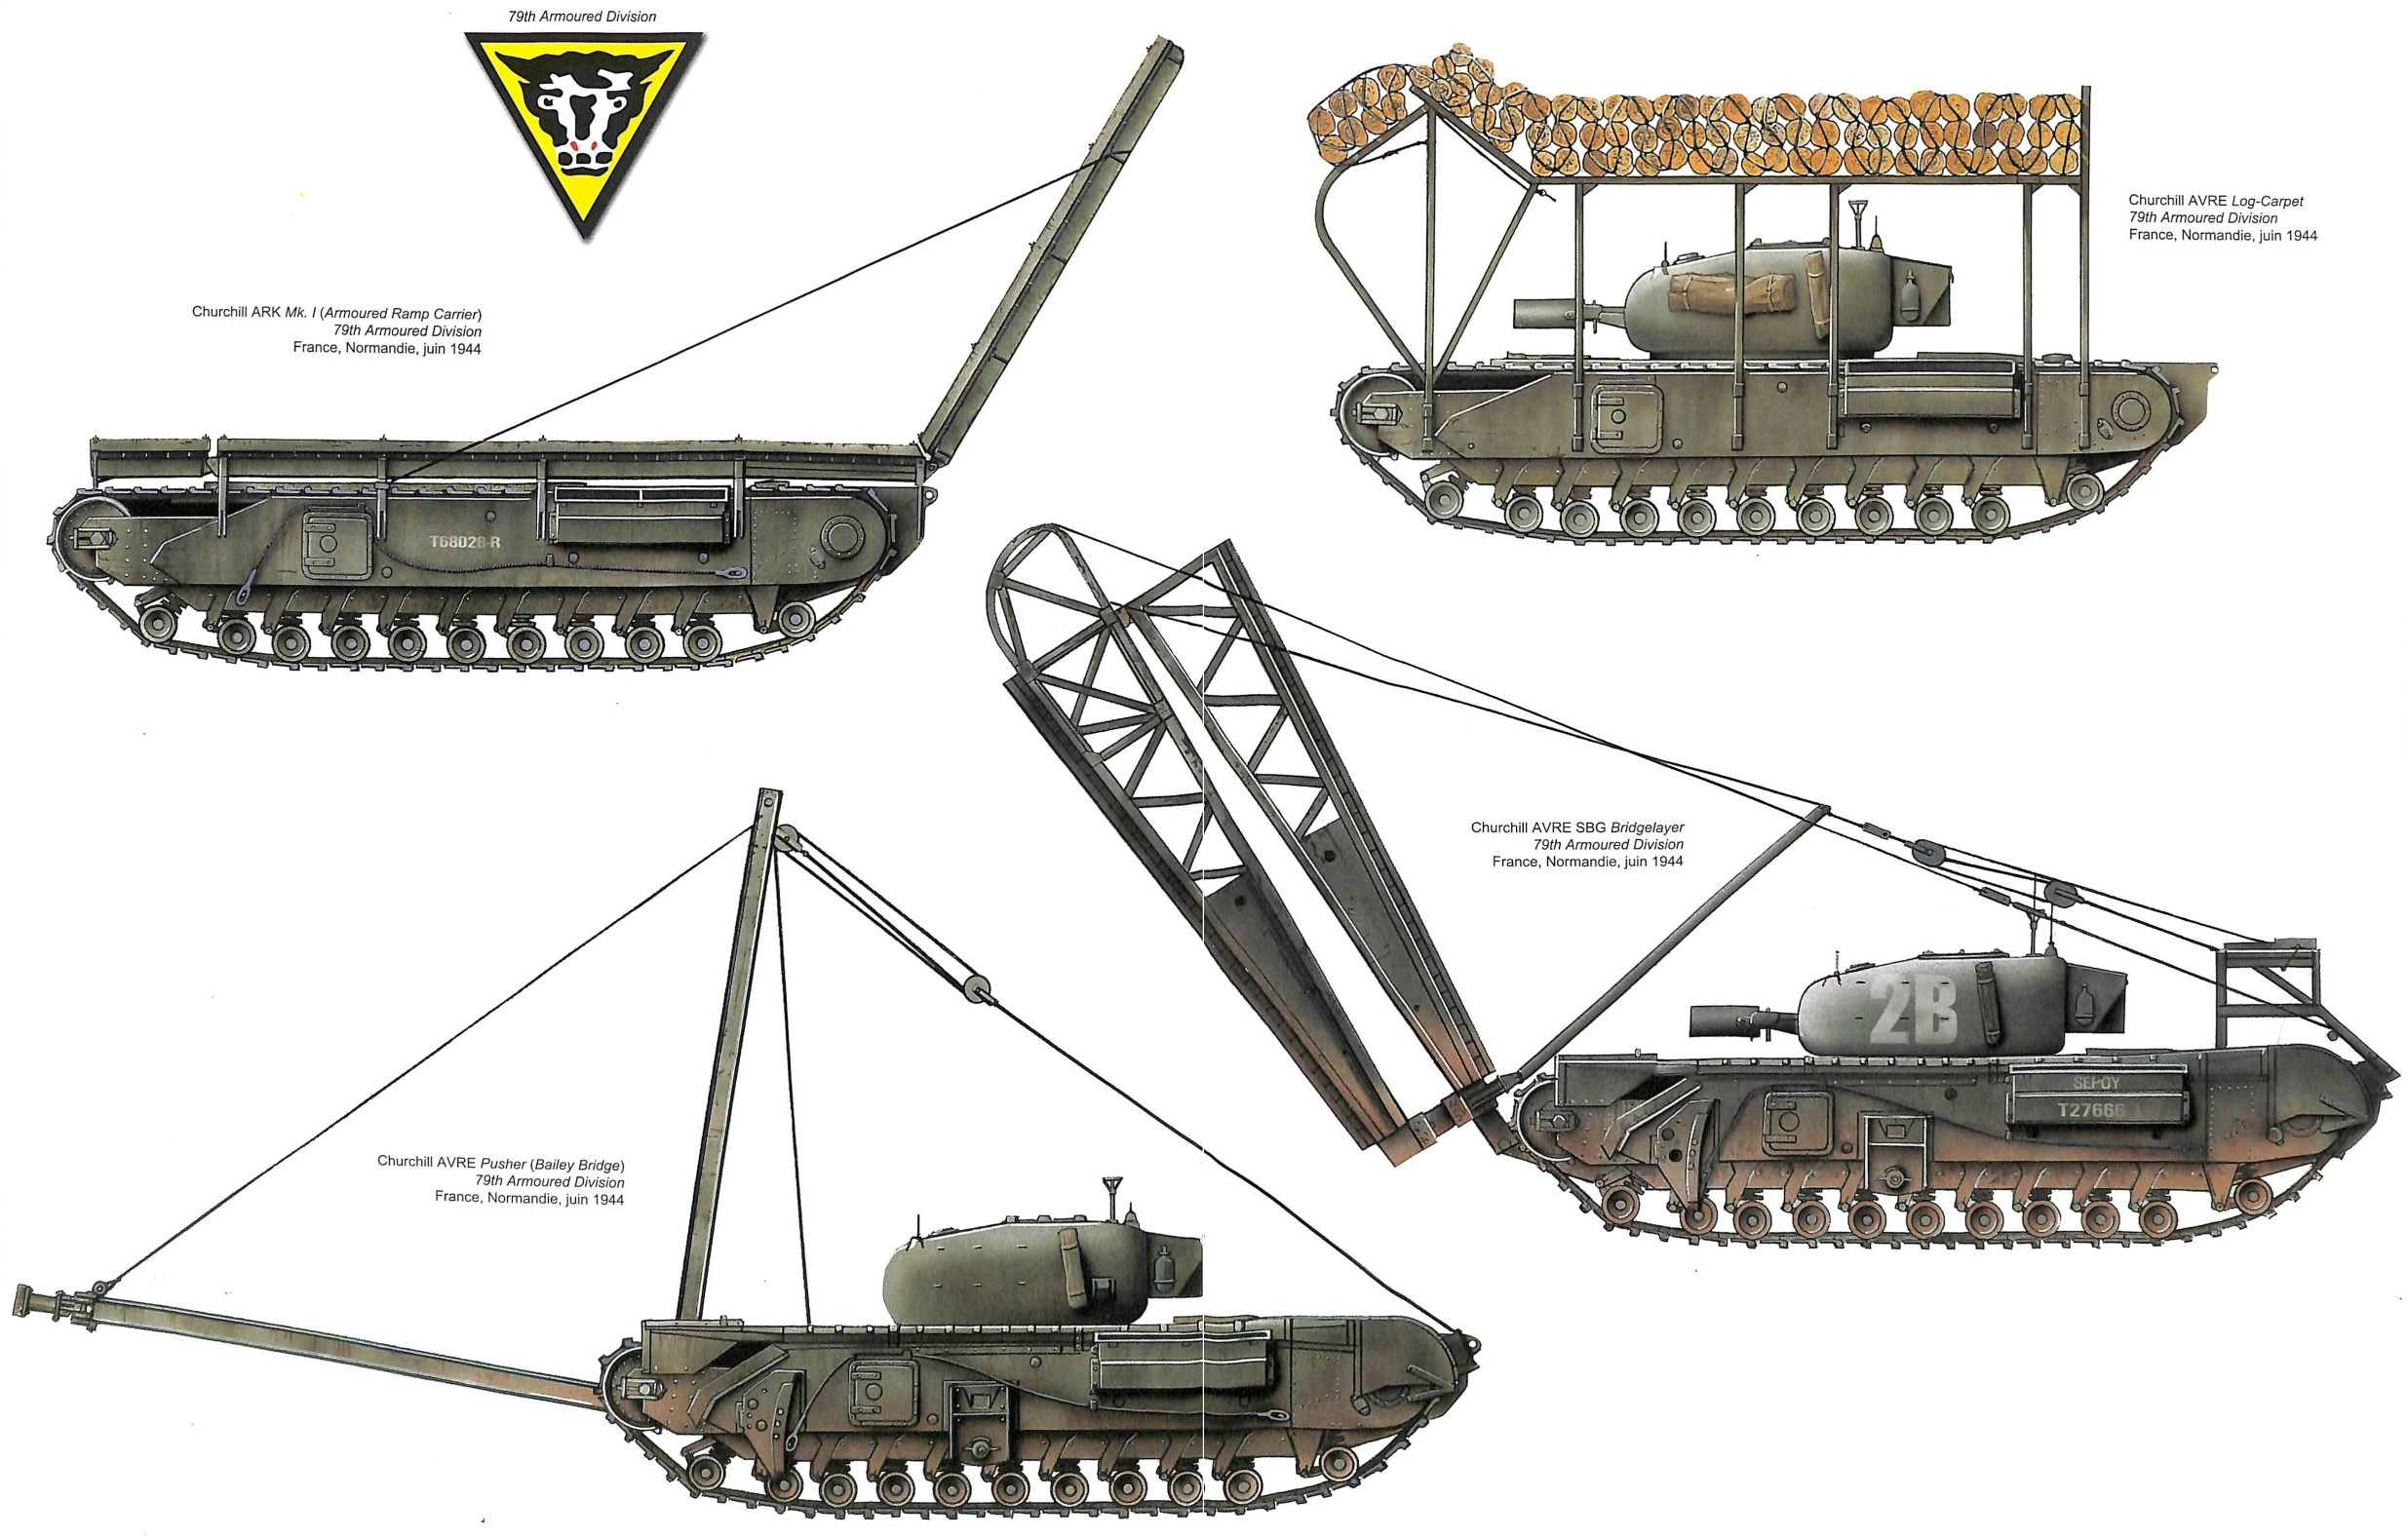 D-Day Tanks | Weapons and Warfare